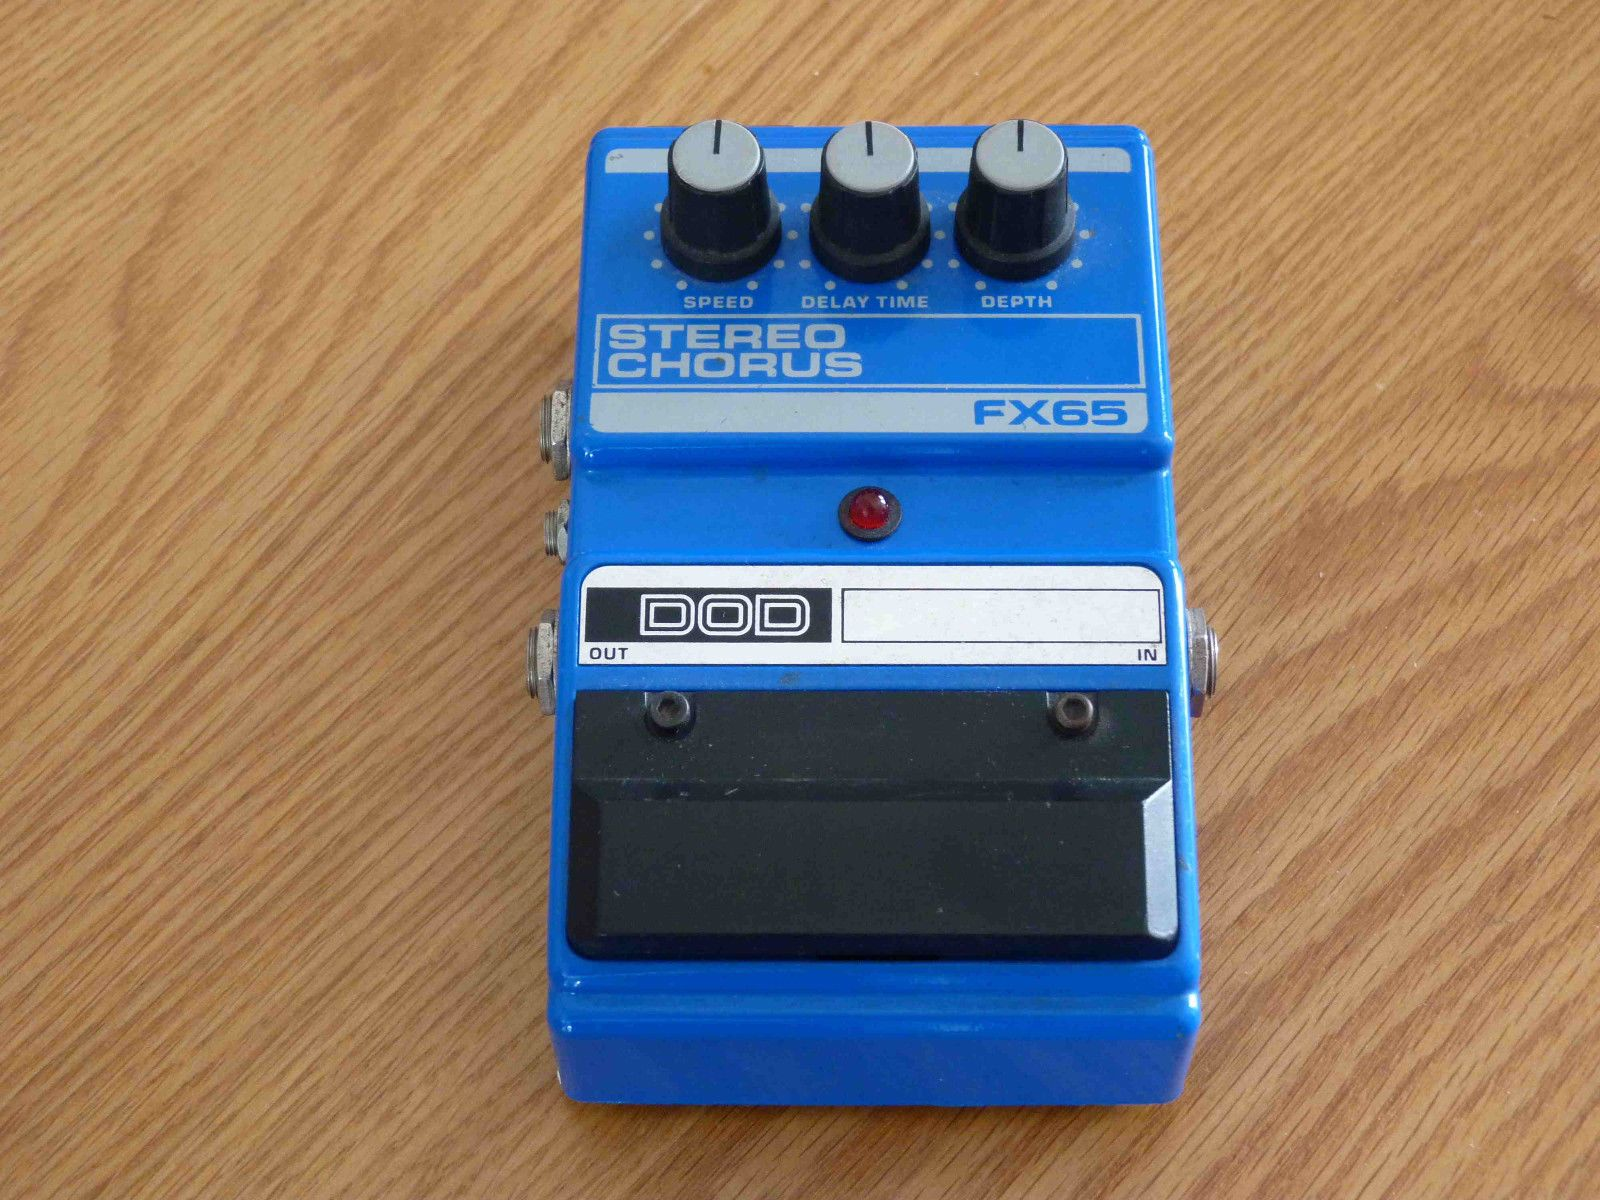 Dod Fx65 Stereo Chorus Vintage Guitar Effects Pedal In Good Condition Vintage Guitars Guitar Effects Guitar Effects Pedals